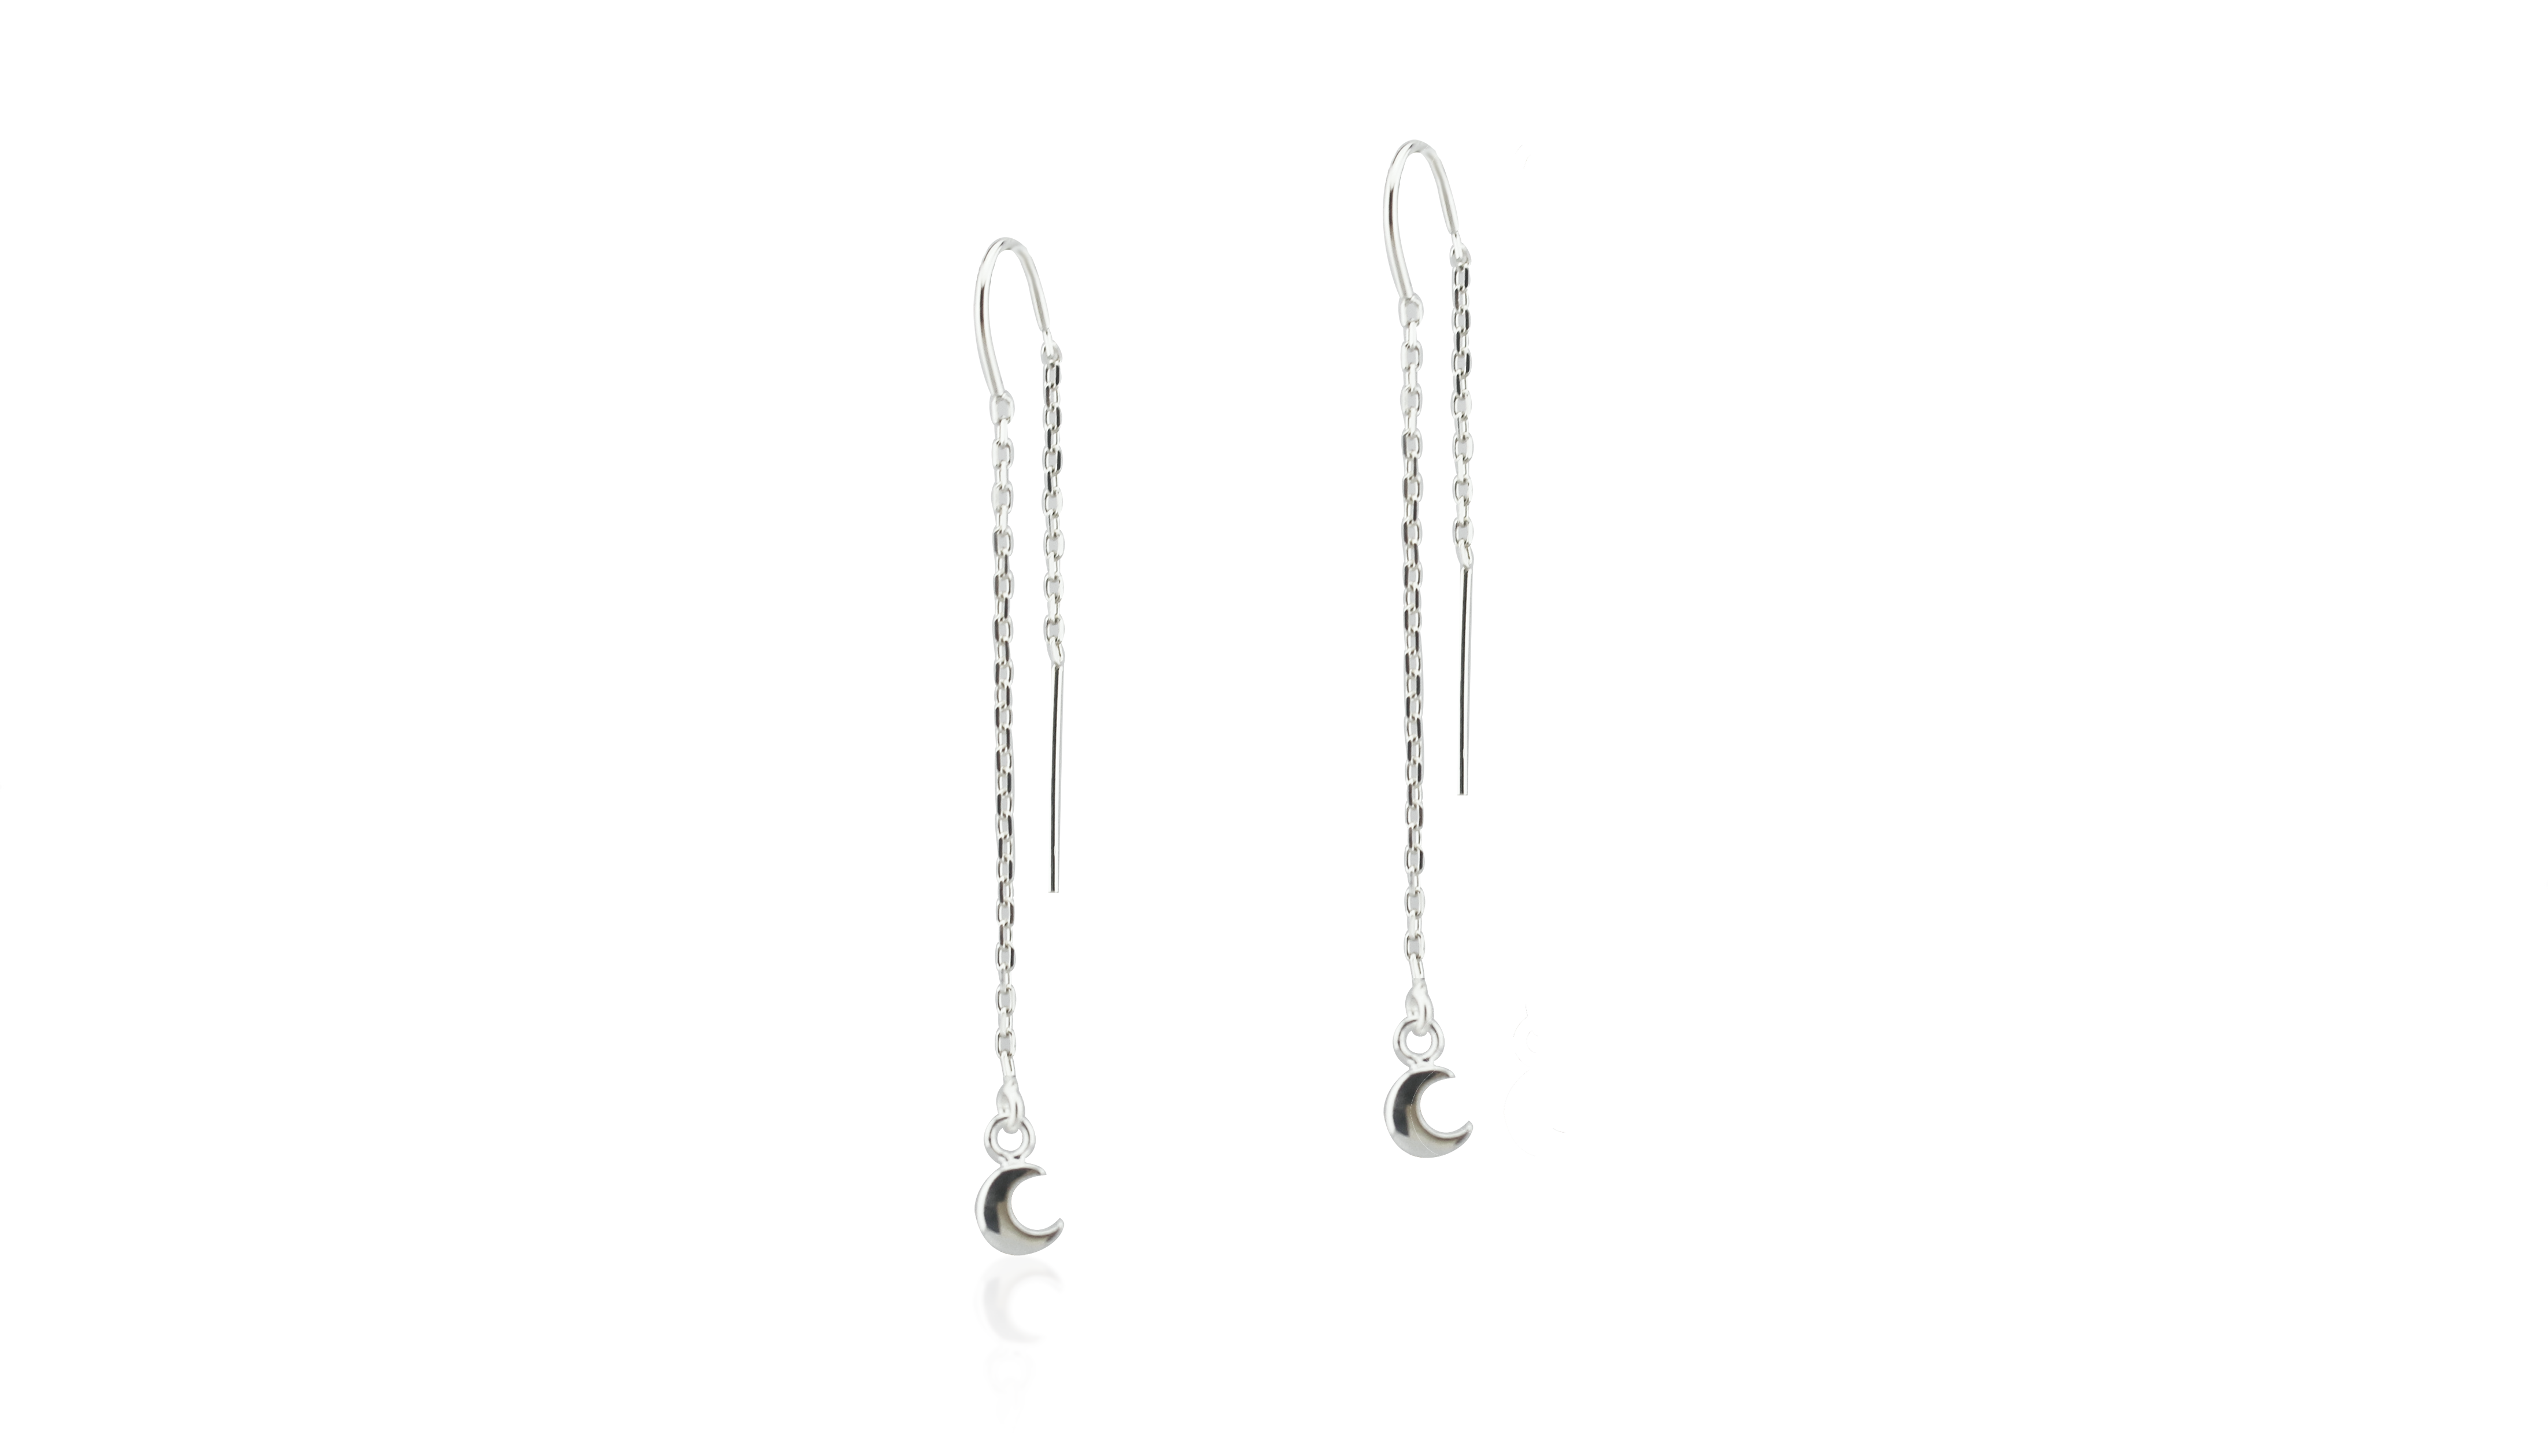 Crescent Moon Threaders